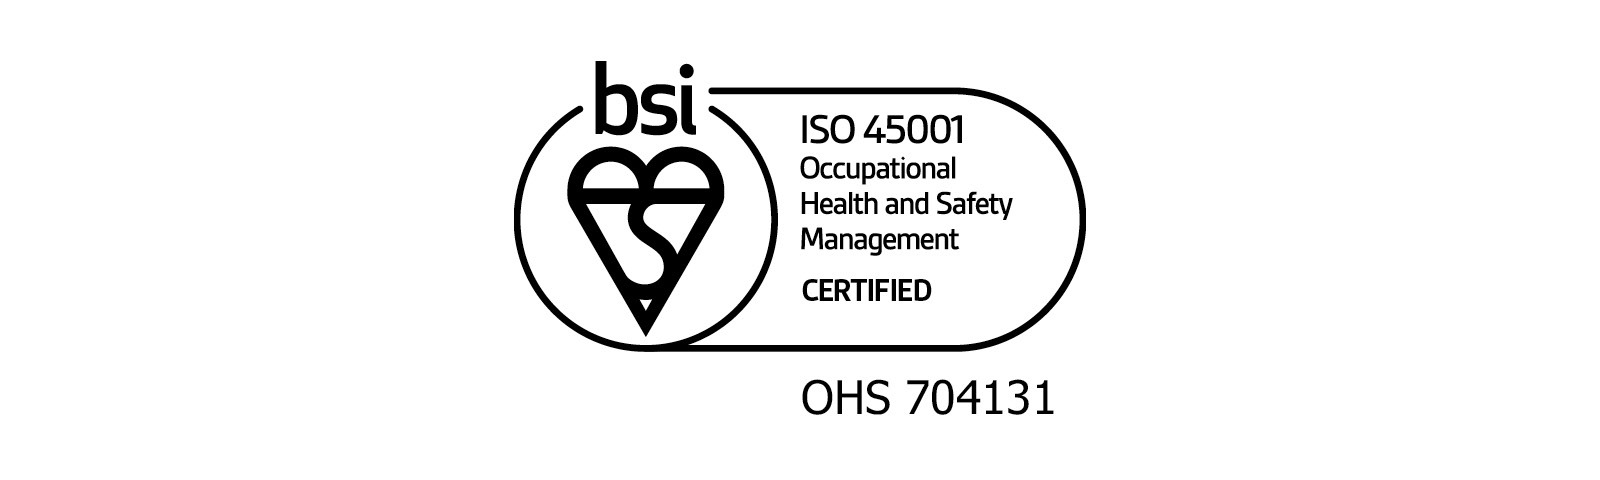 ISO 45001:2018 gallery image